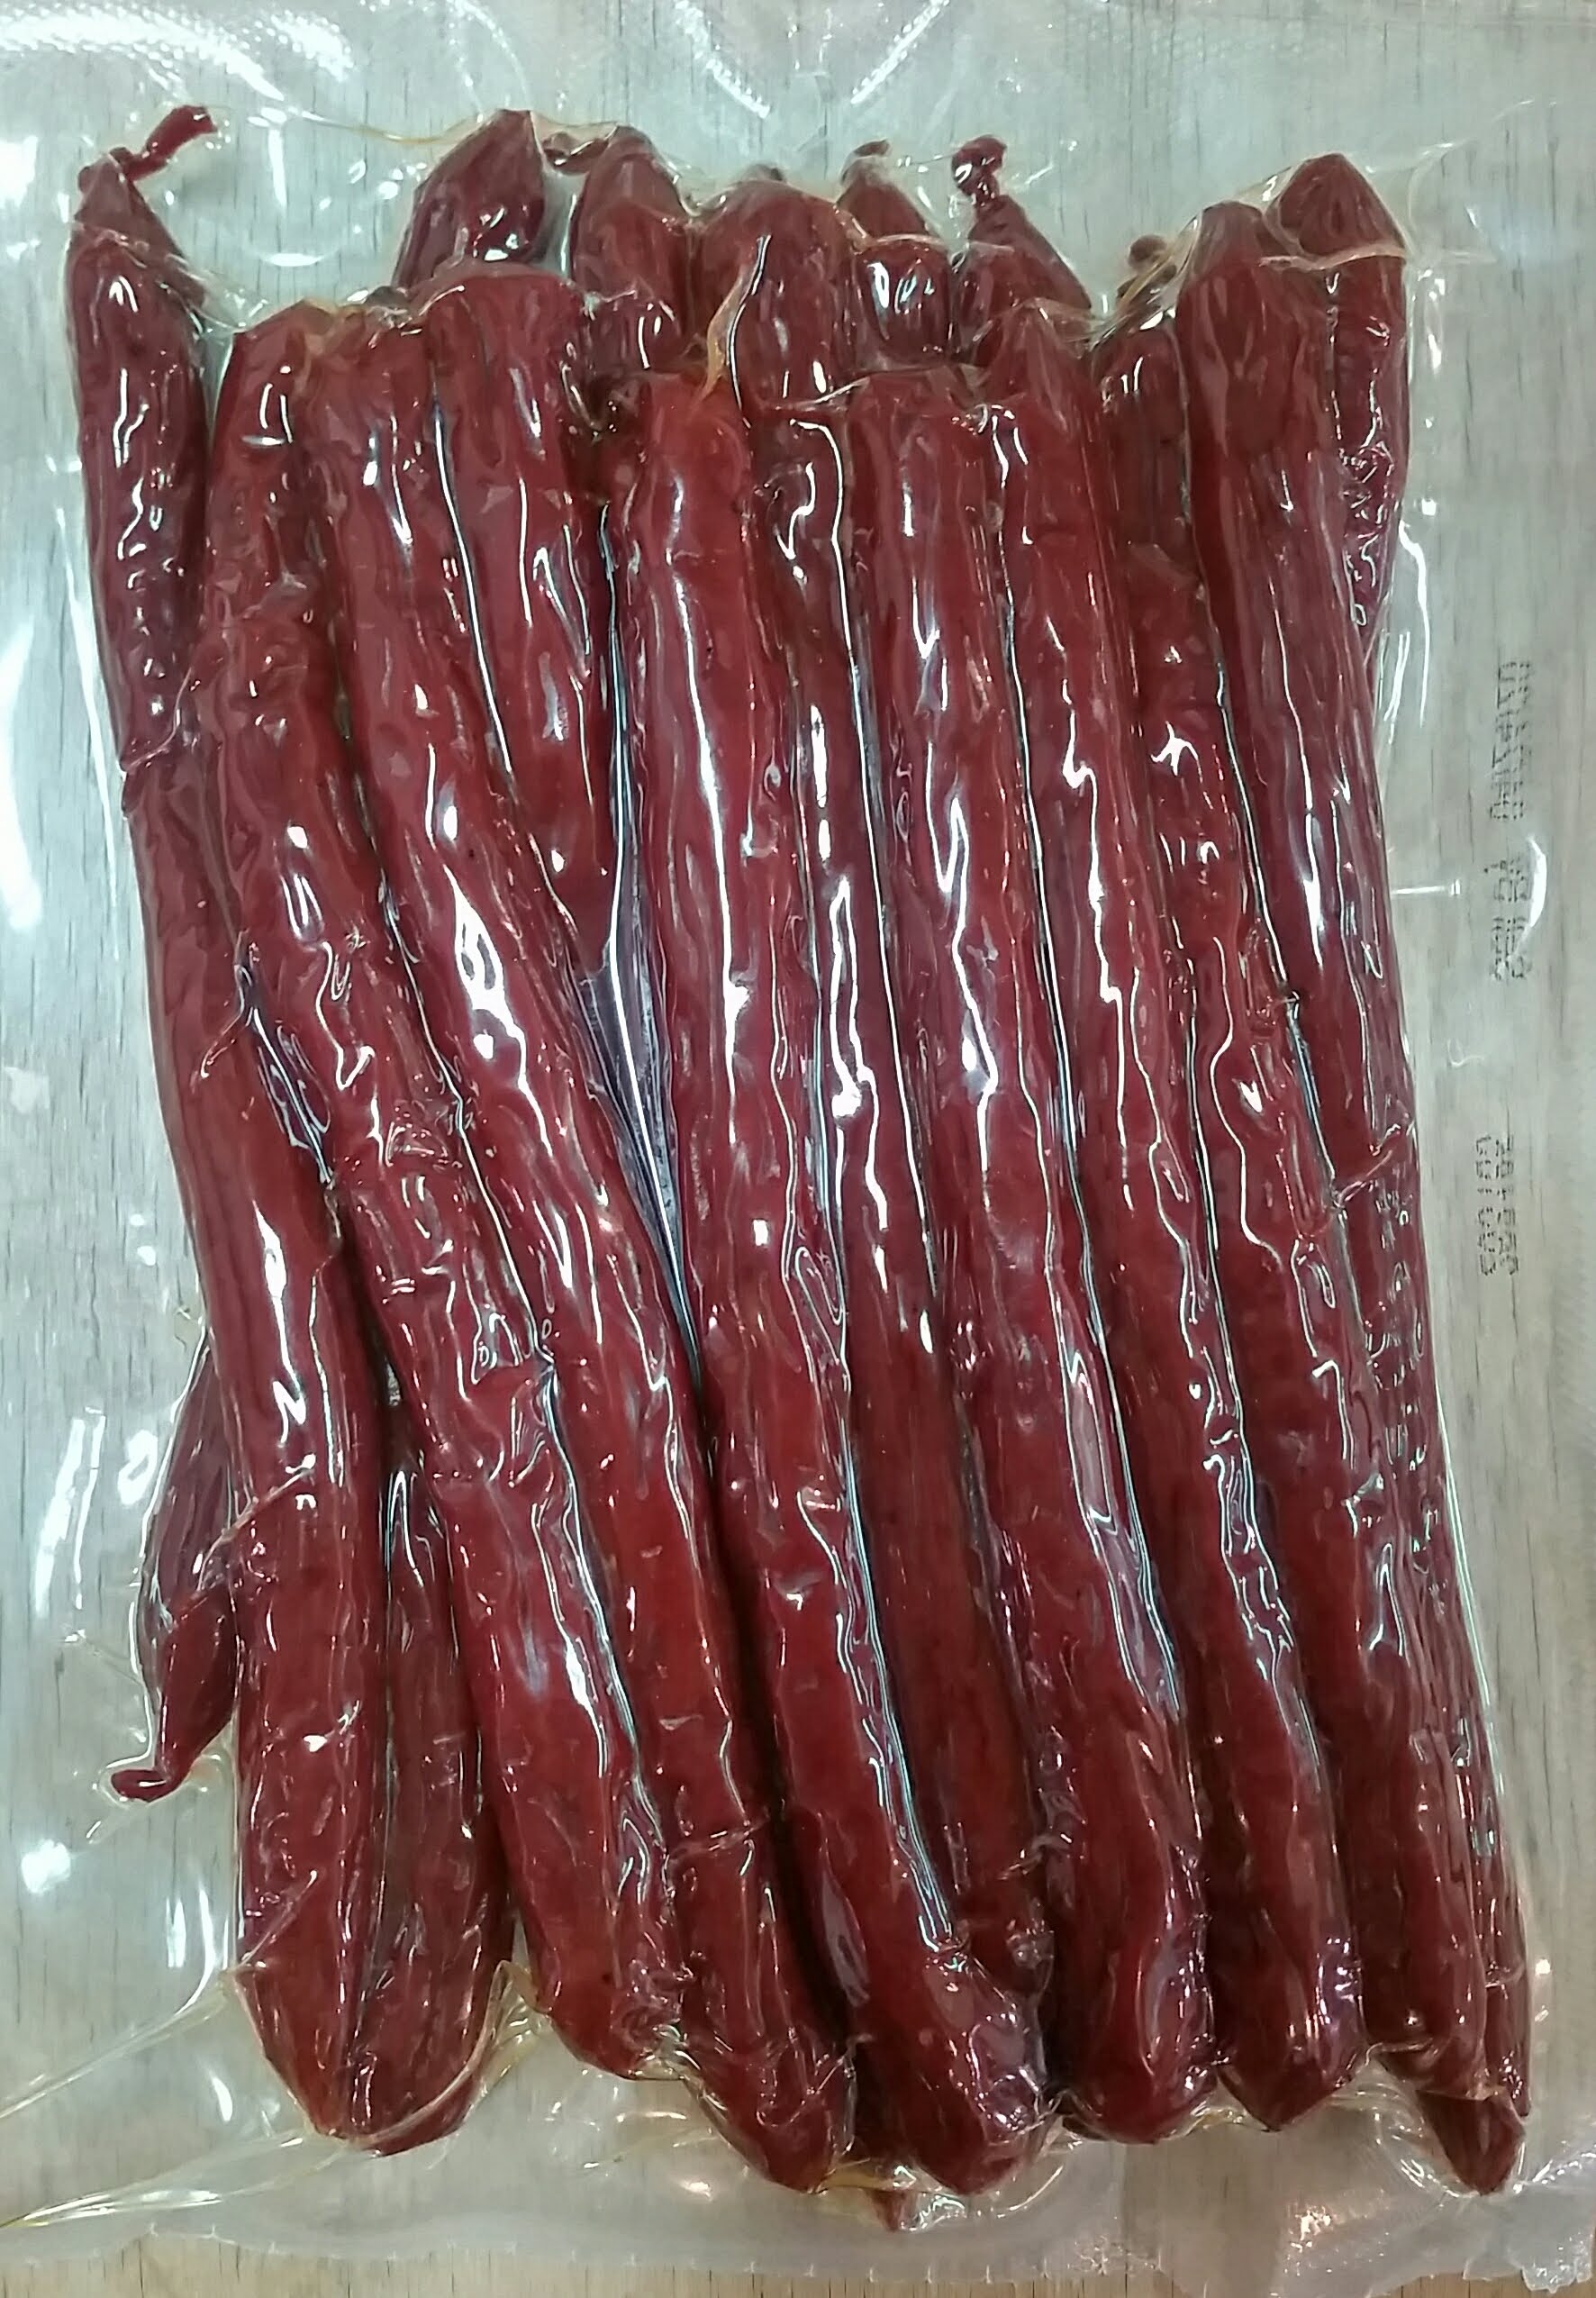 Jerky Hut - Habanero w/ Hot pepper - Beef Sticks (1 LB.) - The Jerky Hut online